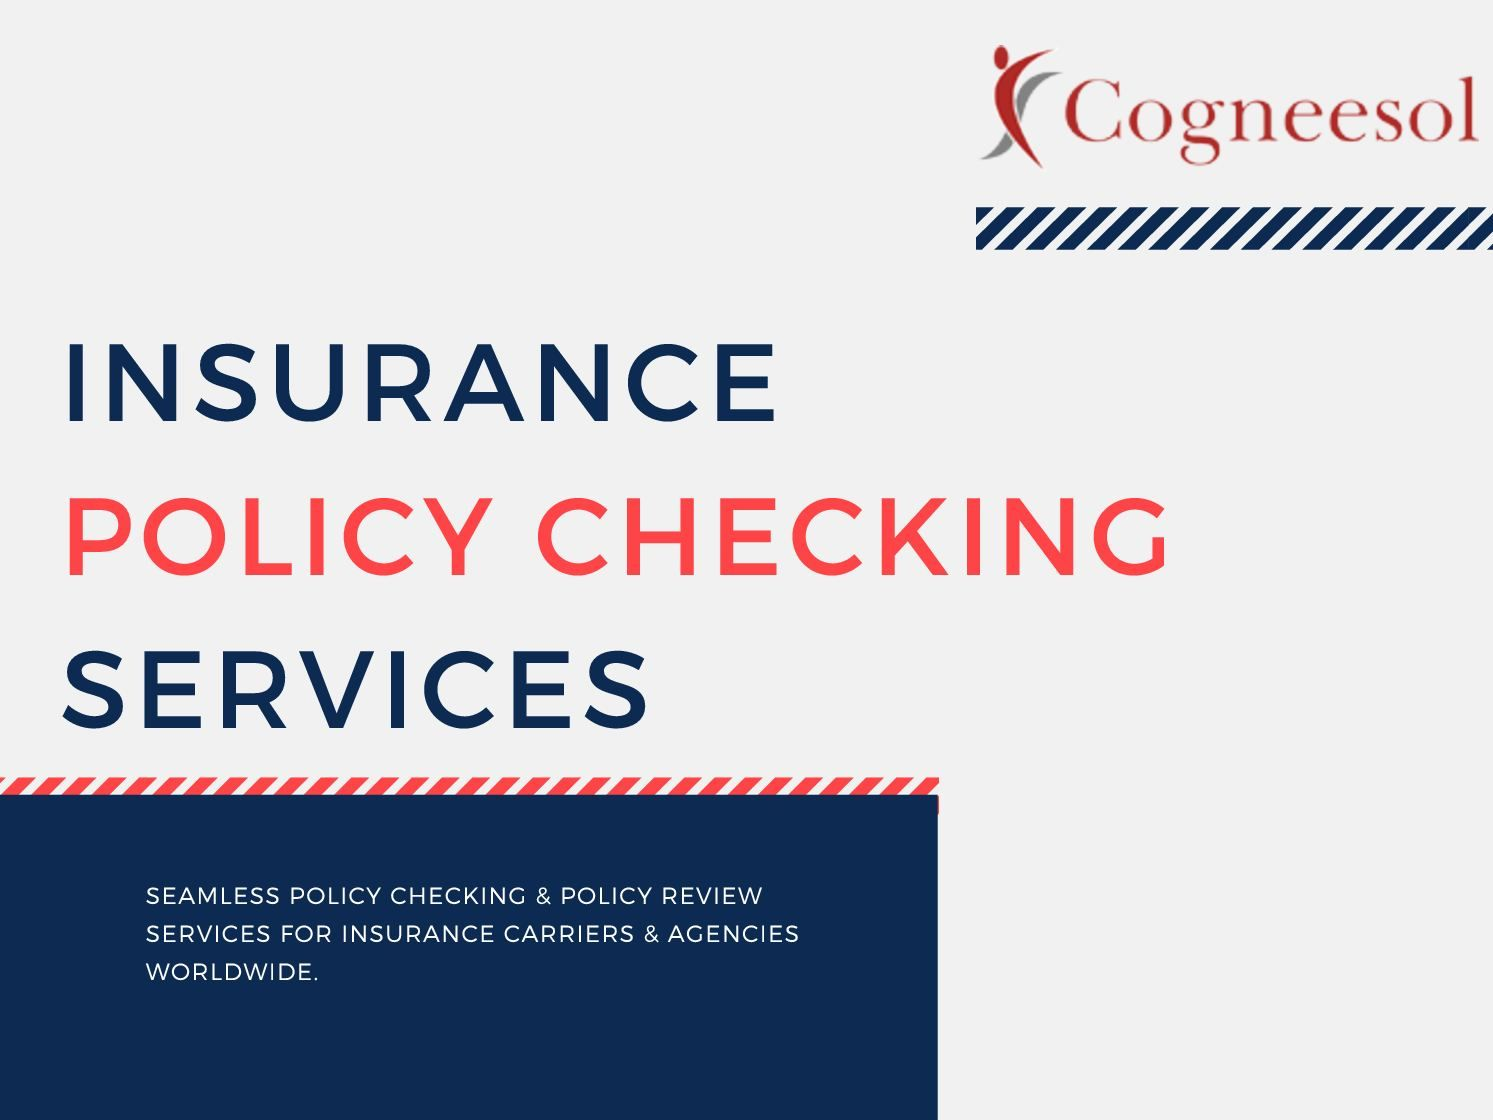 Insurance Policy Checking Services: Outsource Policy Review